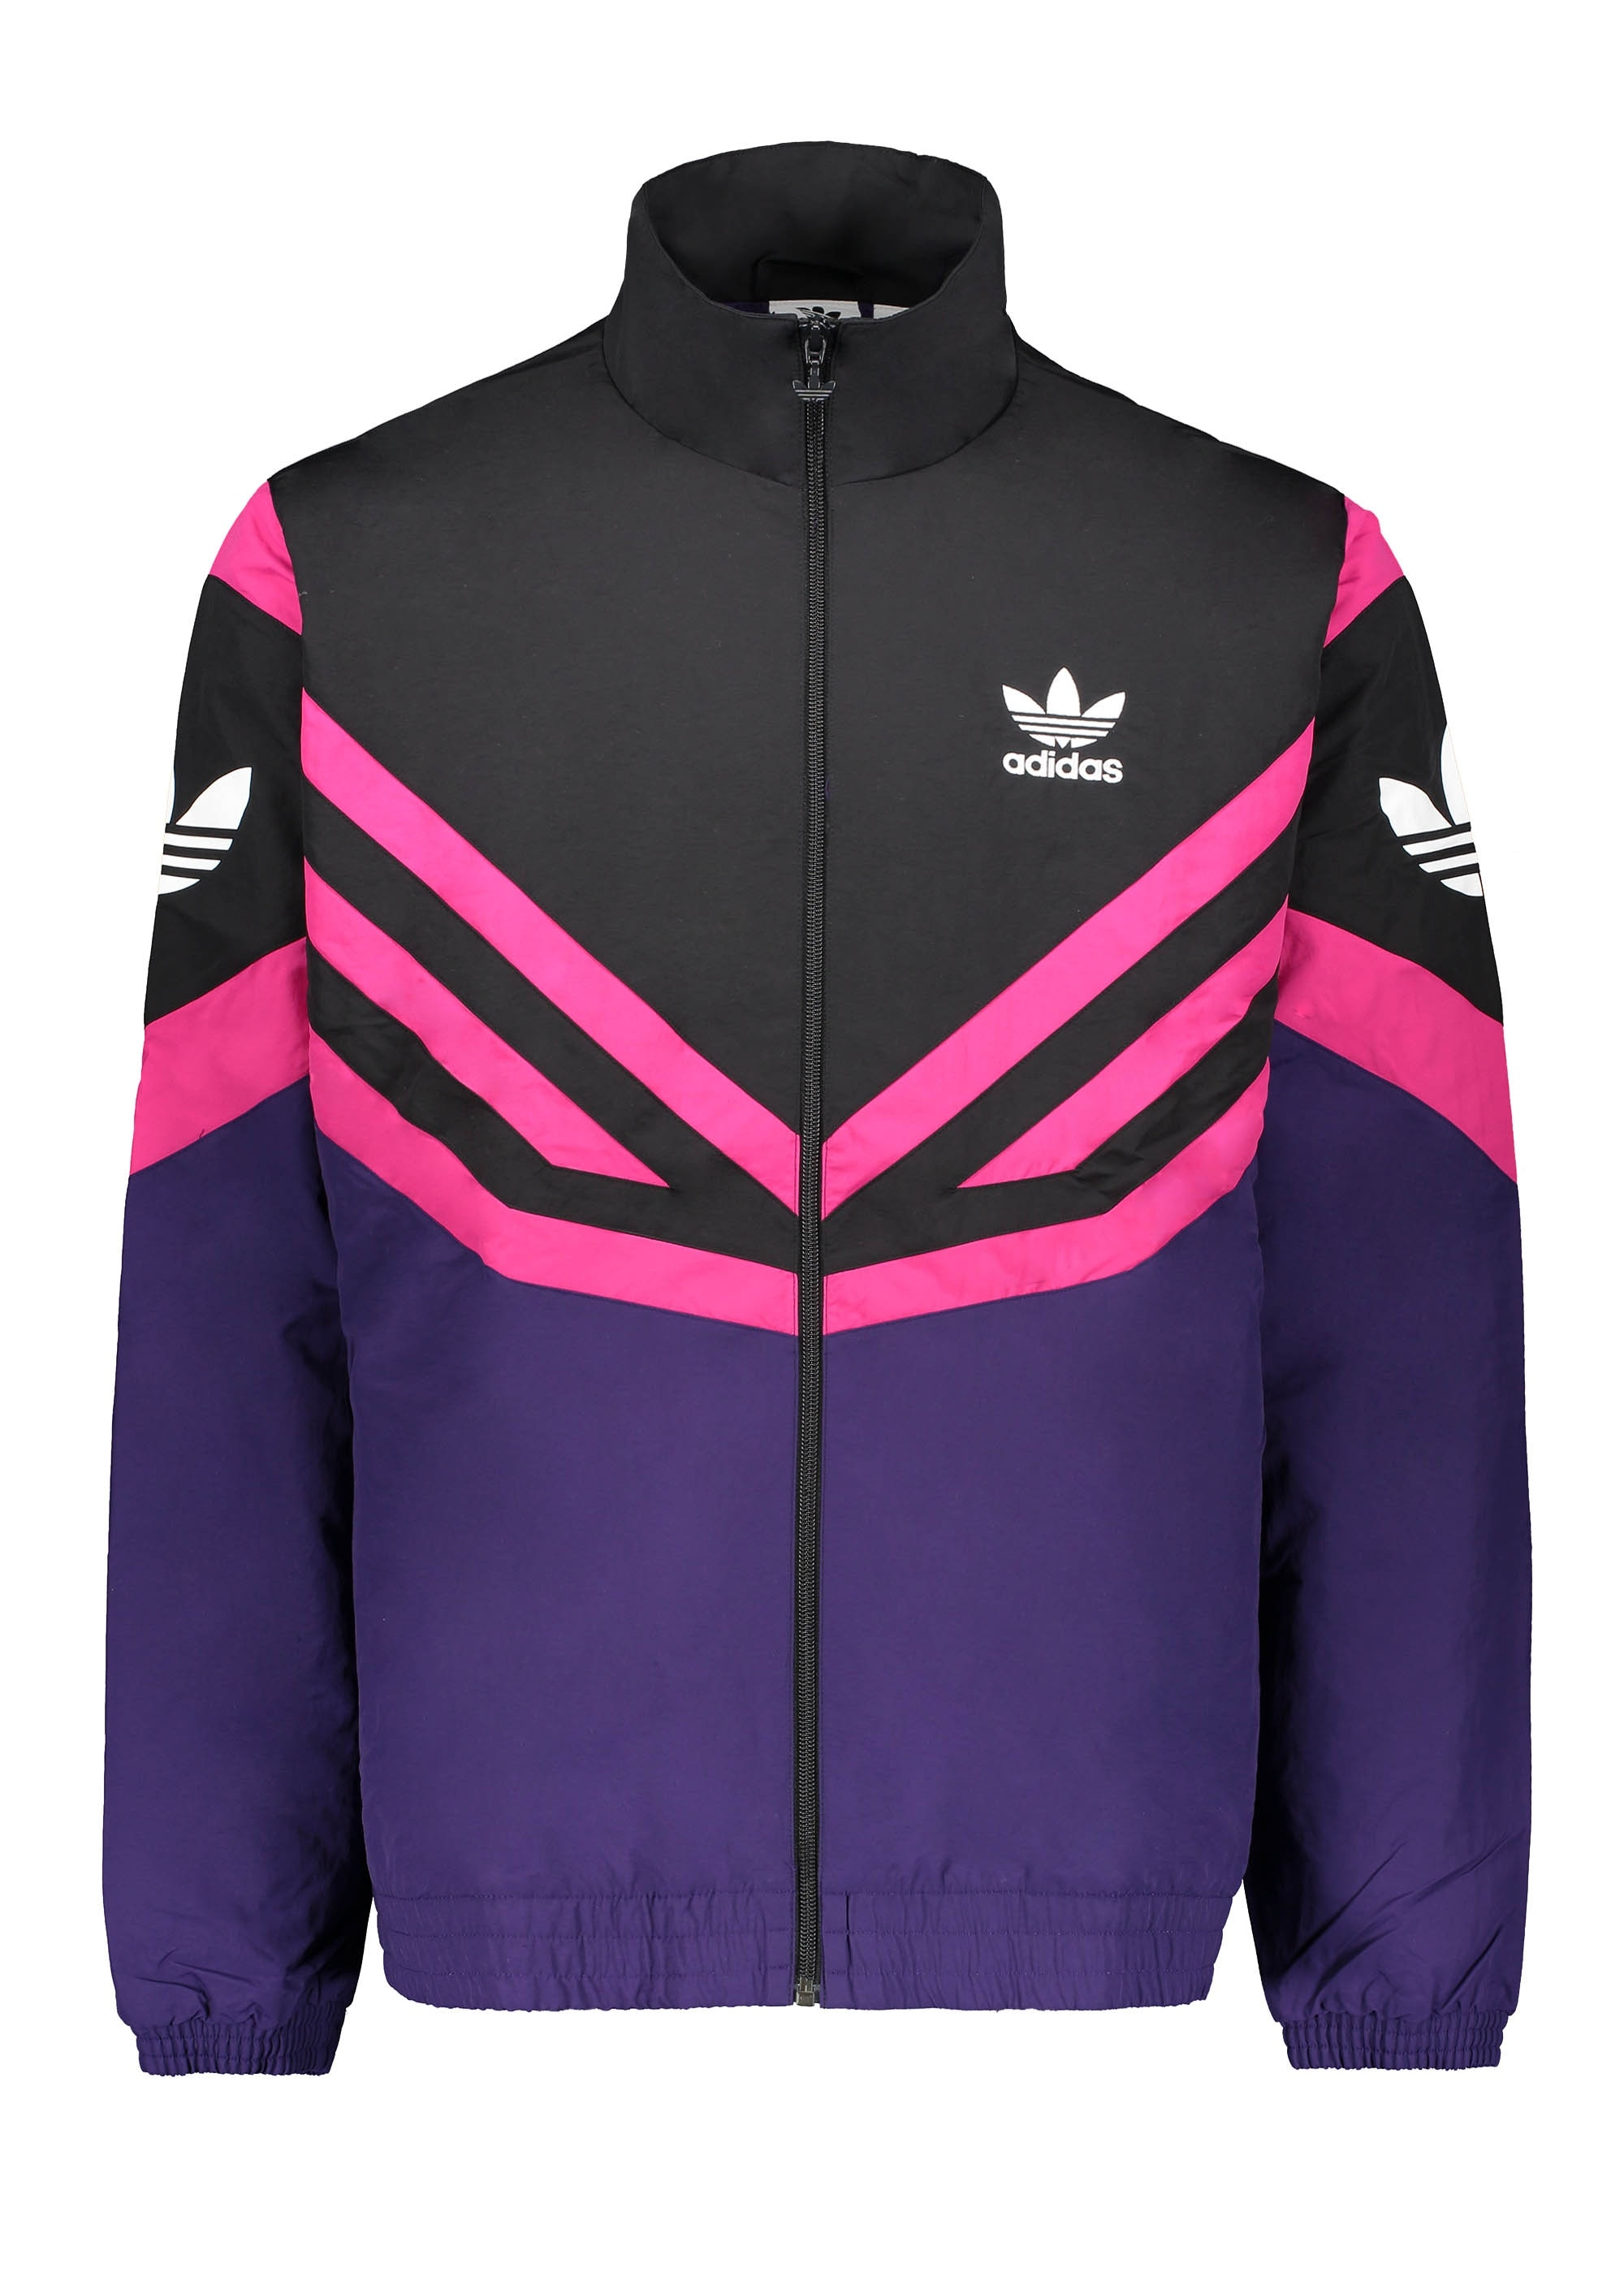 ea95d887e3c9 adidas Originals Apparel Sportivo Track Top Black   Purple - Track ...